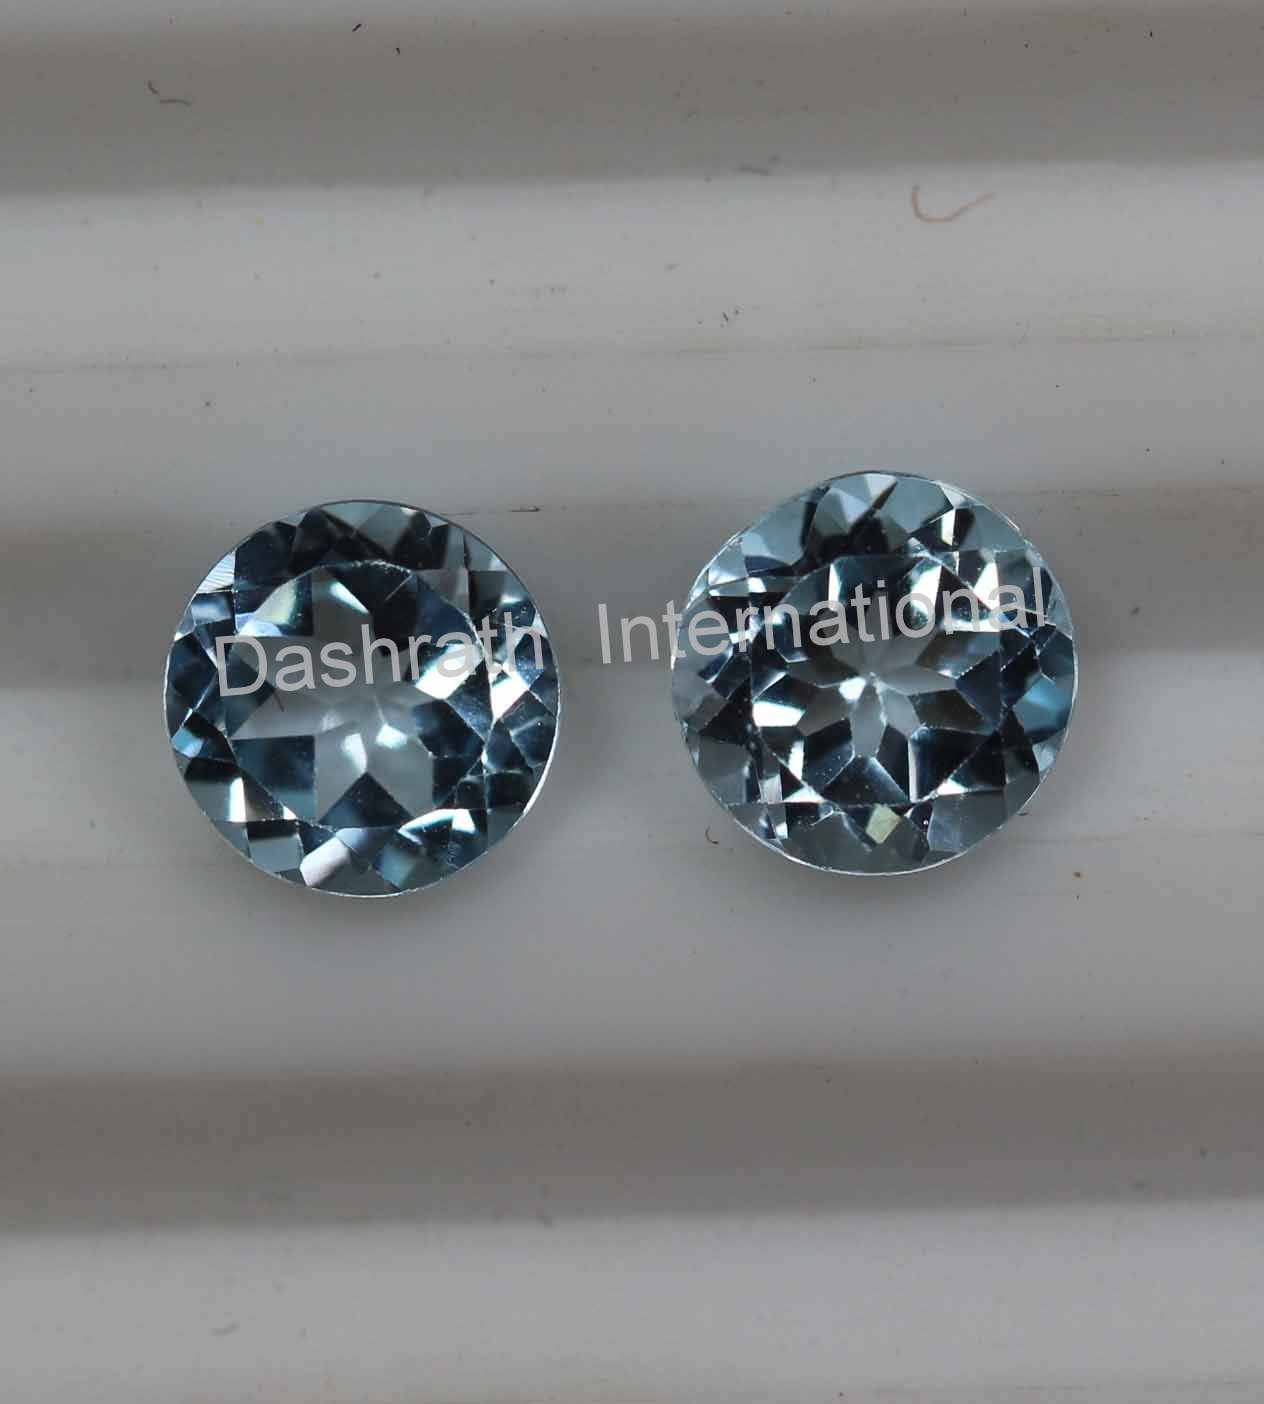 8mmNatural Sky Blue Topaz Faceted Cut Round 5 Pieces Lot Blue Color  Top Quality Loose Gemstone